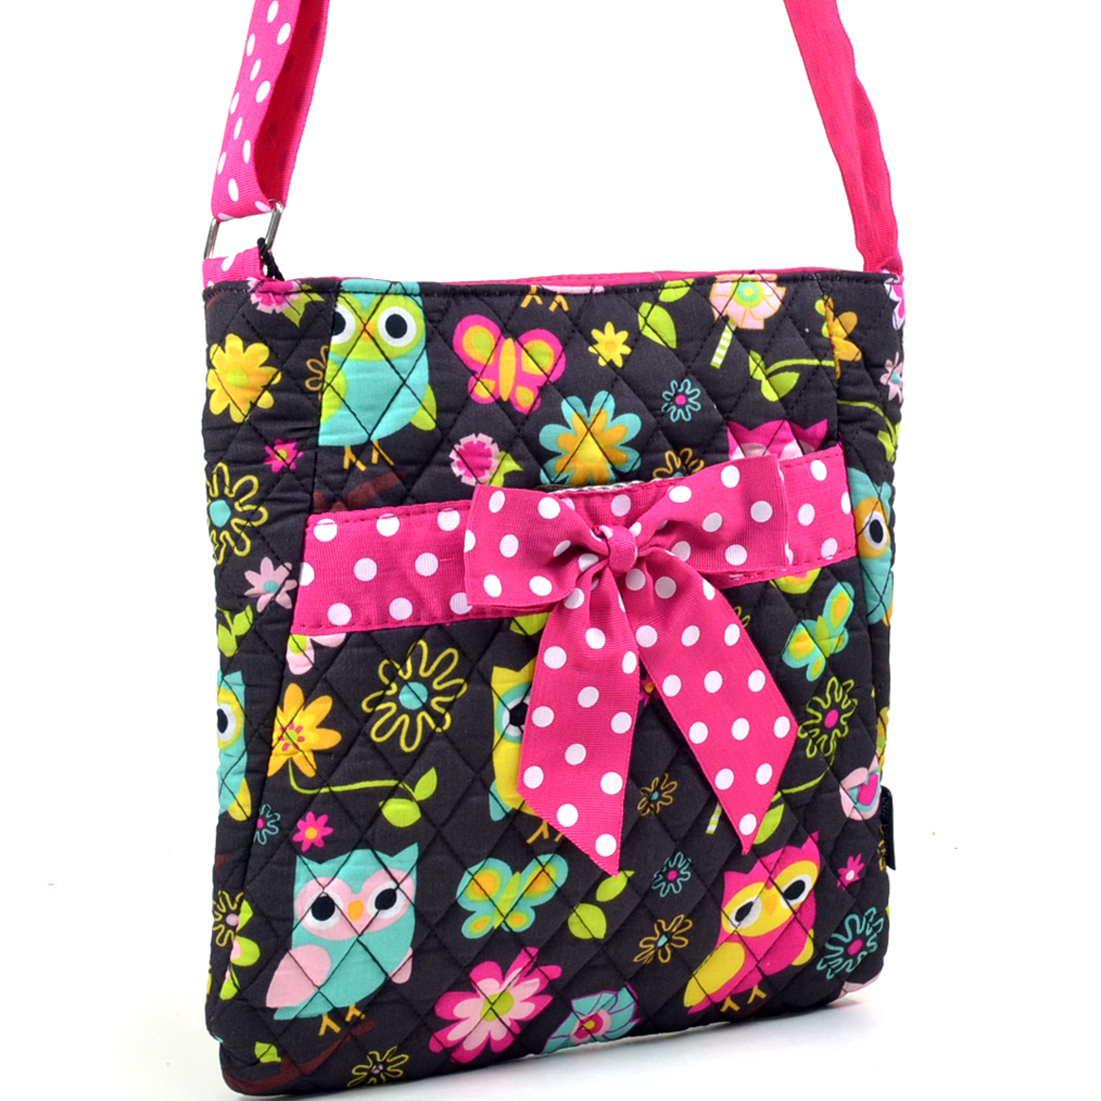 Owl Print Quilted Messenger Bag with Polka Dot Trim